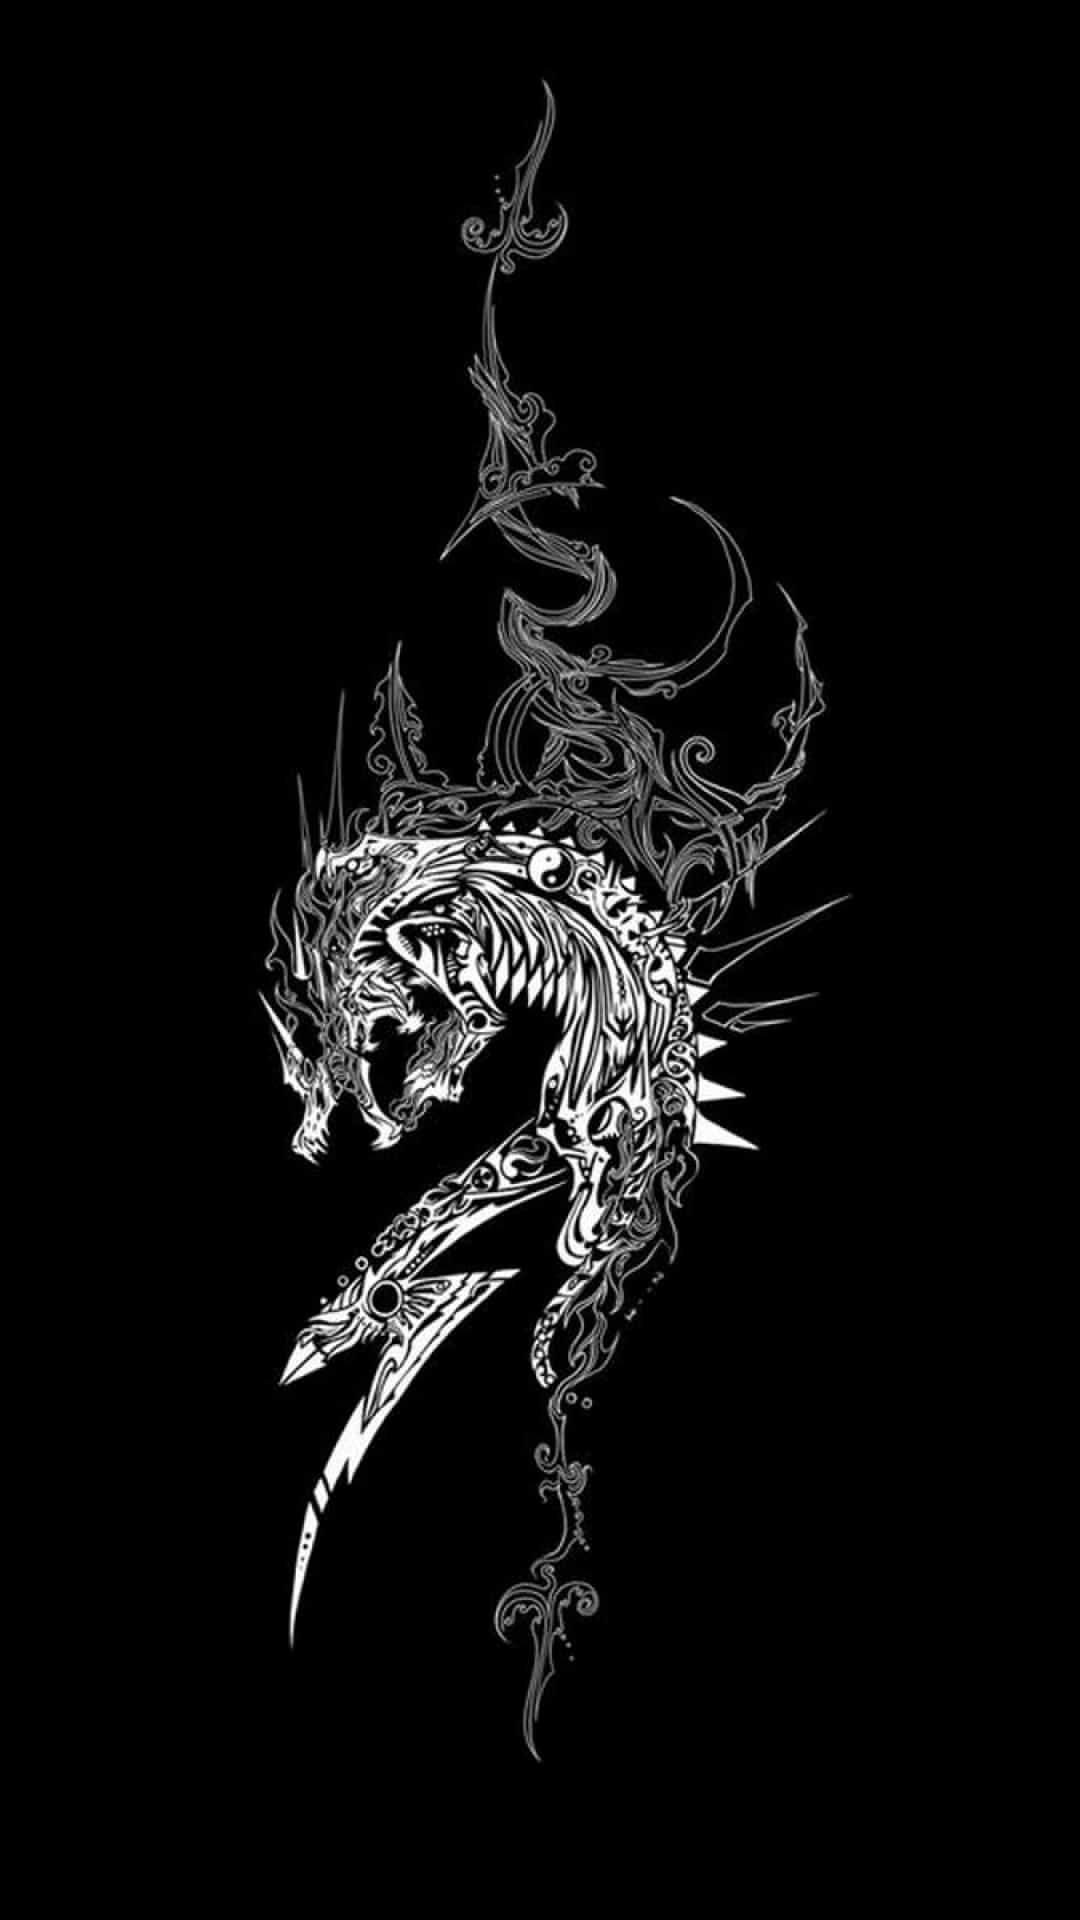 Dragon Black And White Wallpapers Top Free Dragon Black